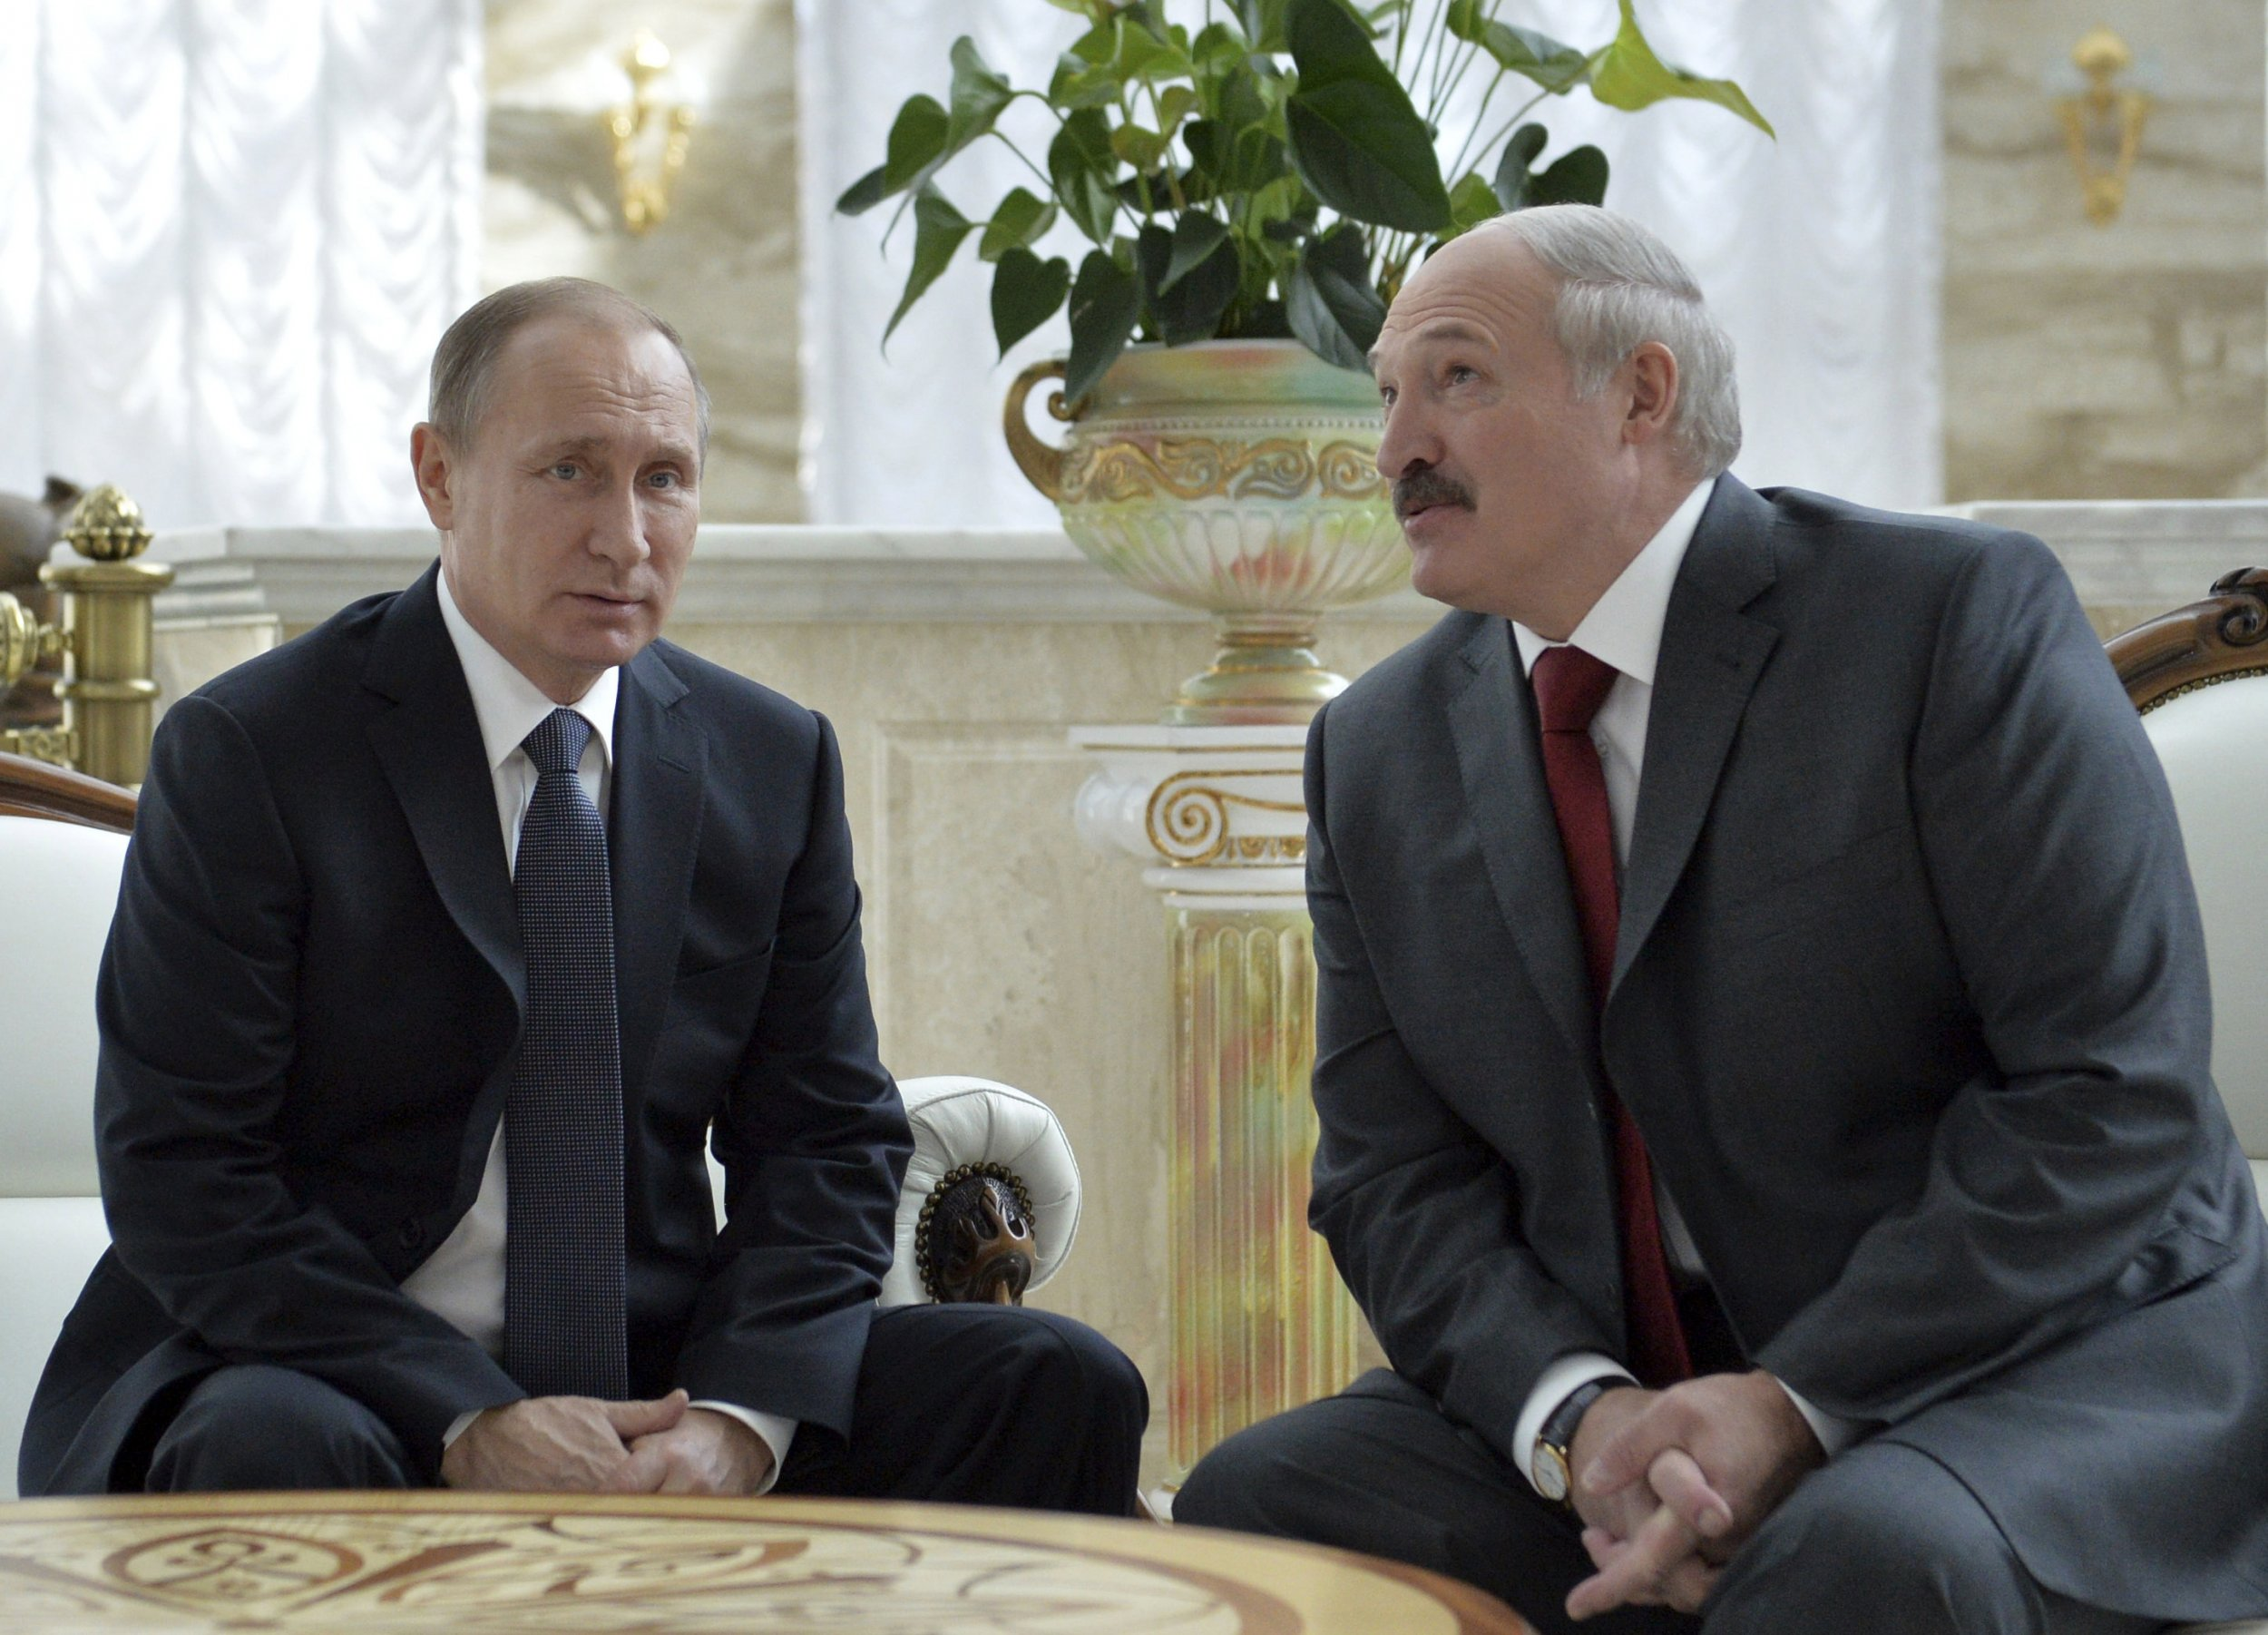 Putin sits next to Lukashenko